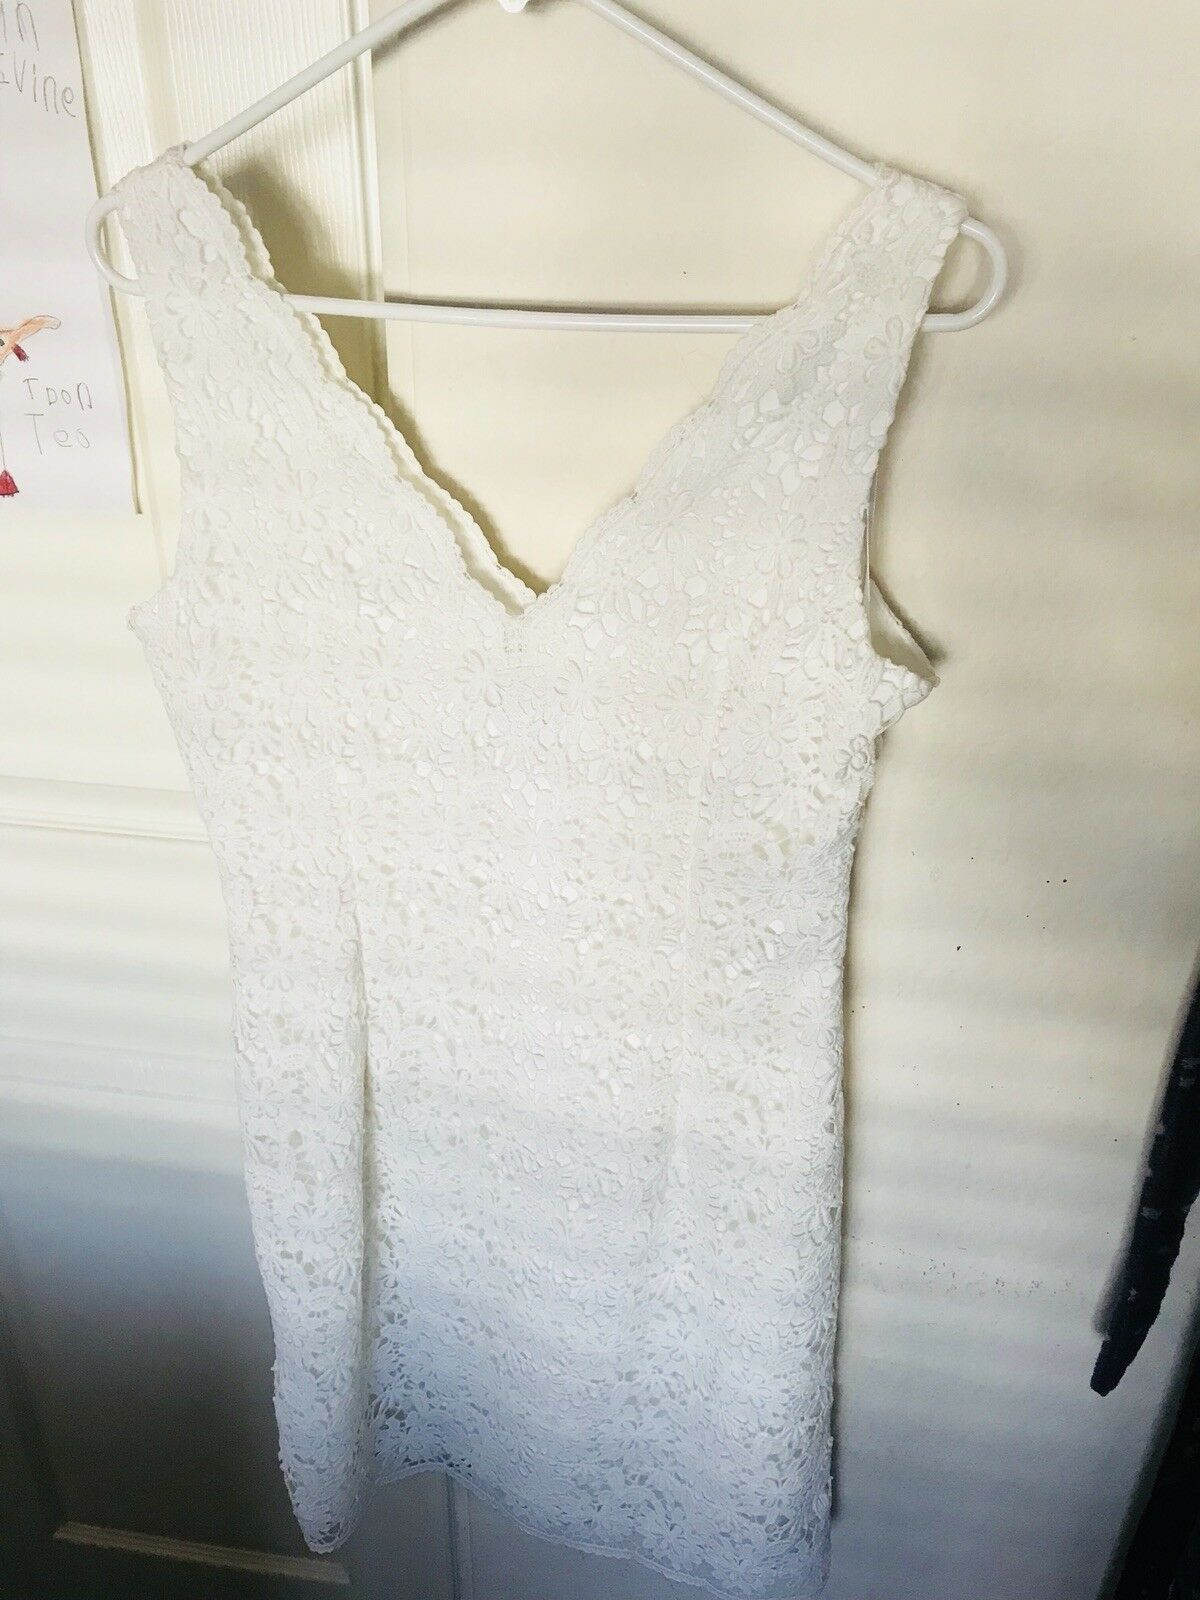 Preowned White Dress Women Size 6 Ann Taylor